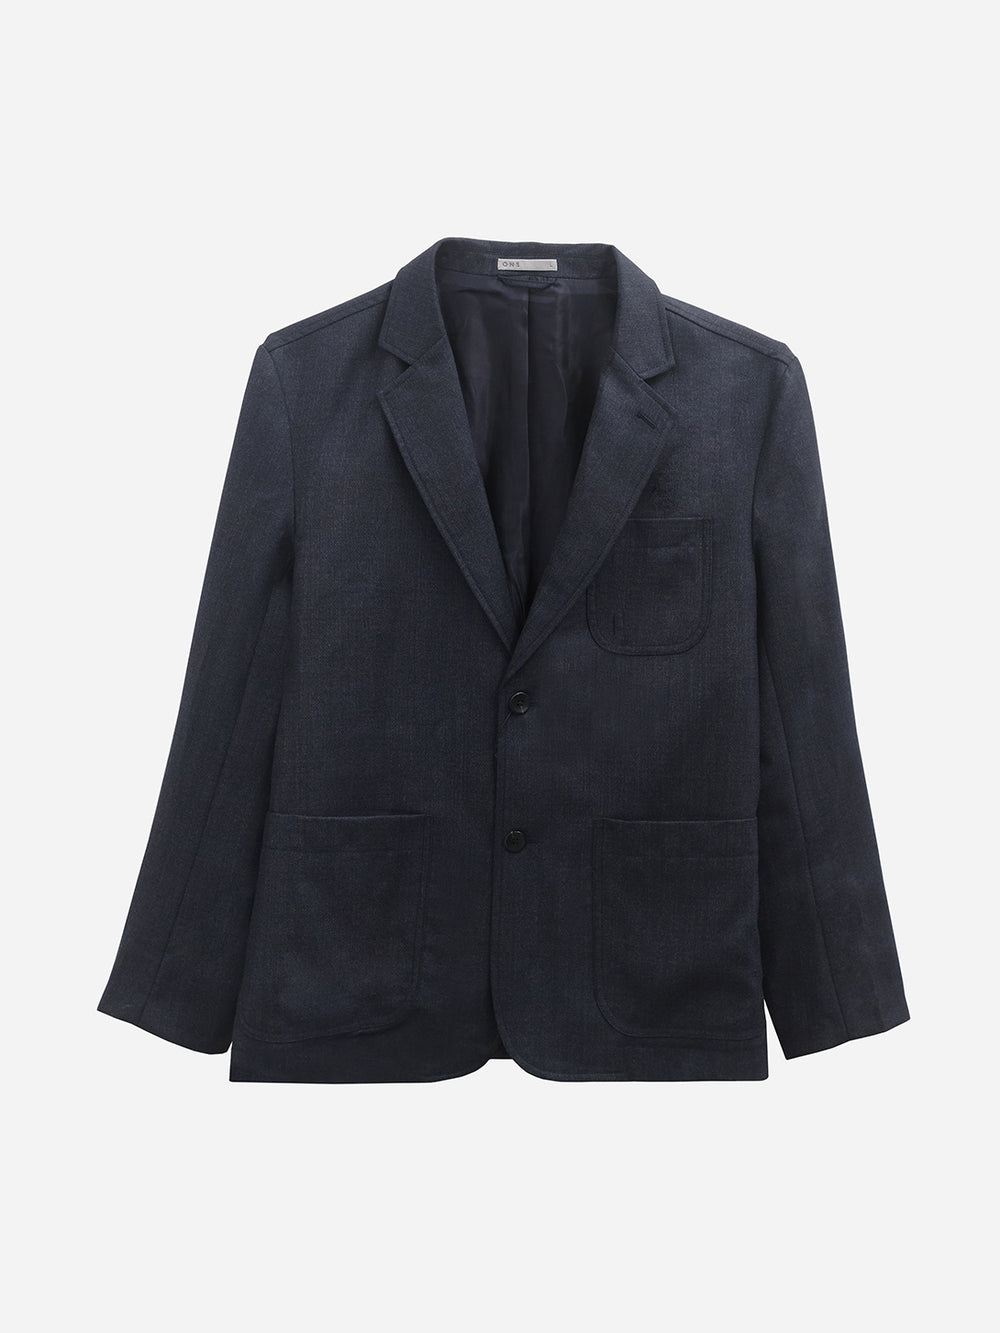 NAVY blazer for men emery blazer ons clothing black friday deals